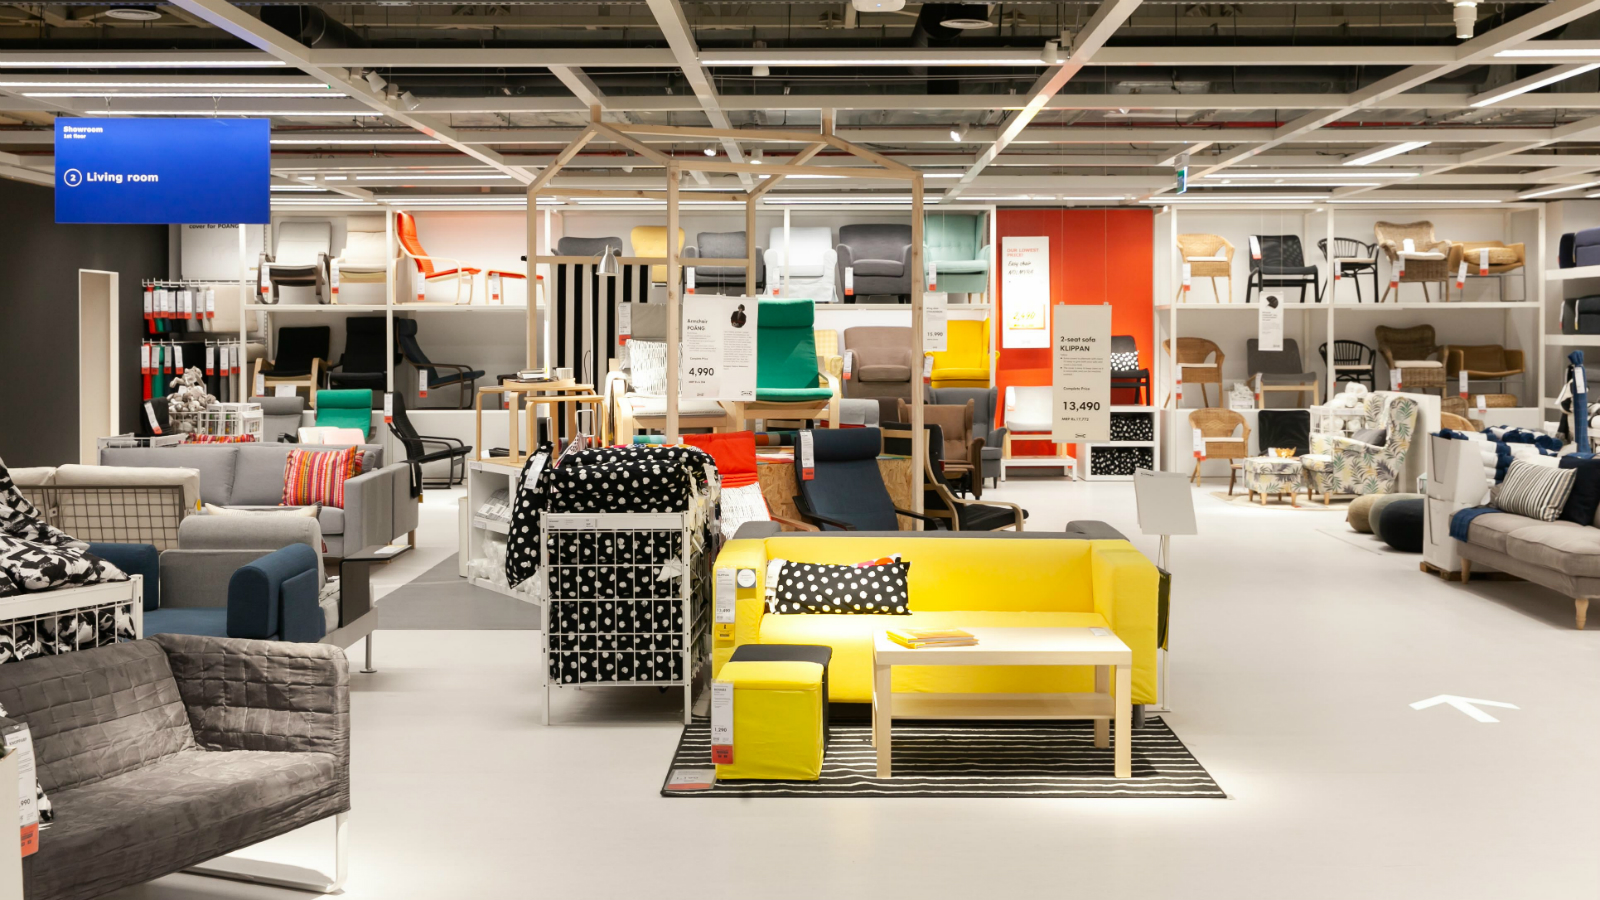 Ordinaire A Guide To Shopping At IKEAu0027s First Store In India